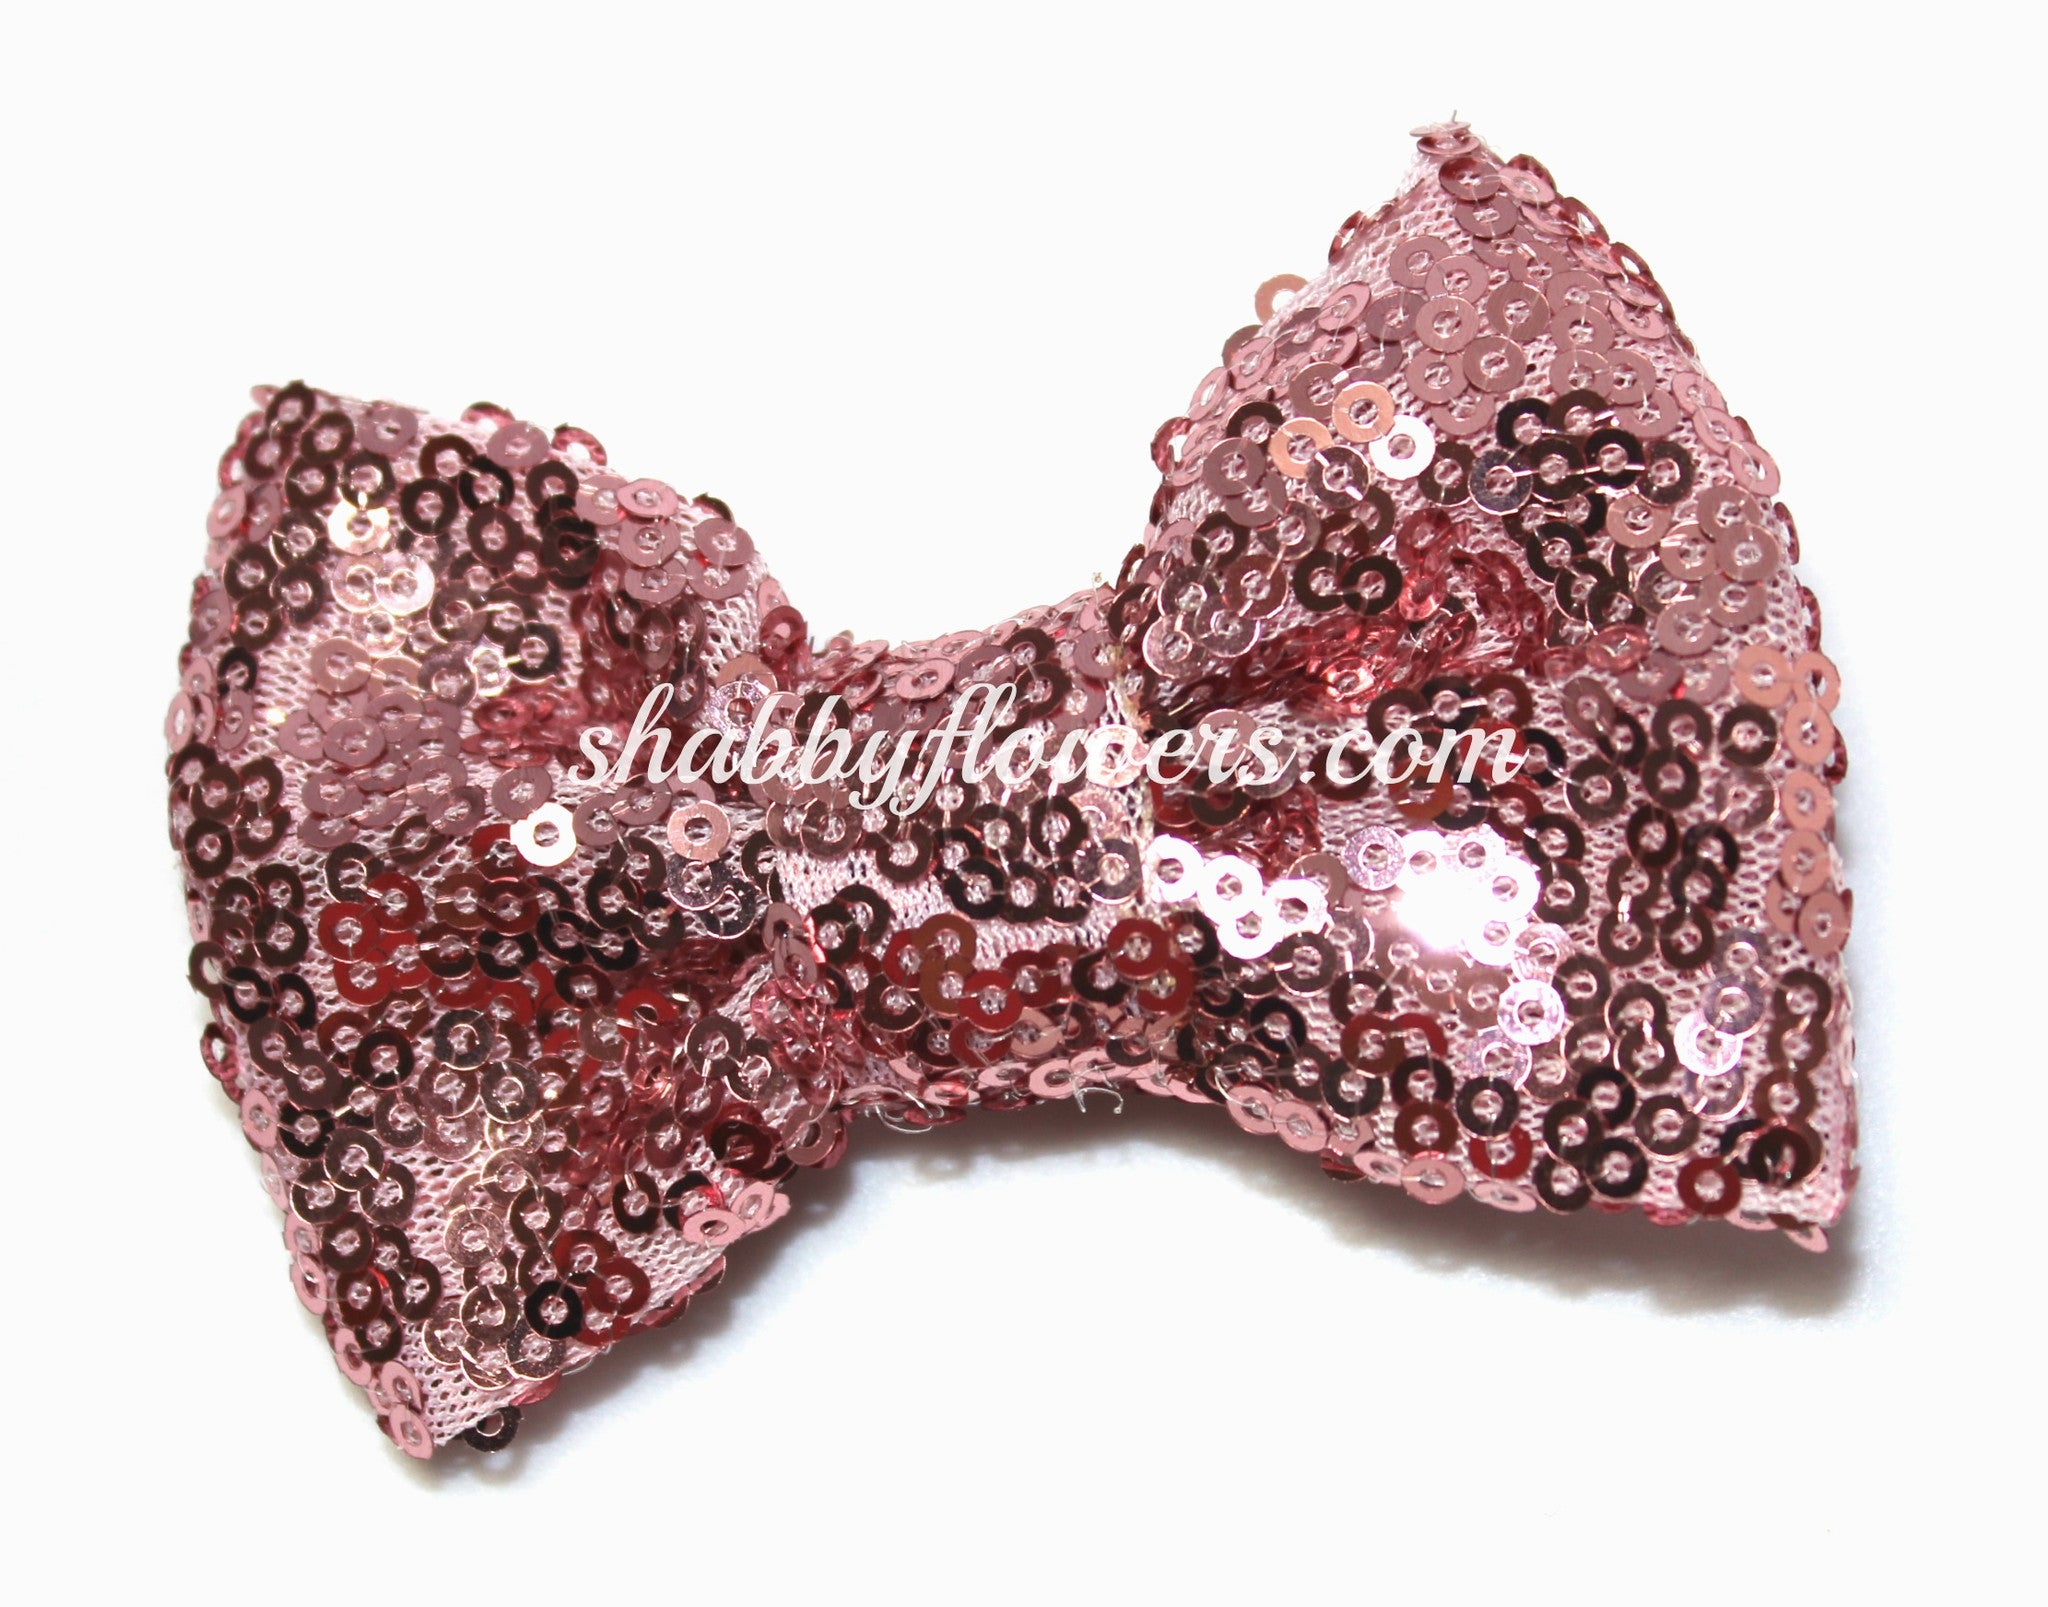 Large Sequin Bow - Dusty Pink - shabbyflowers.com